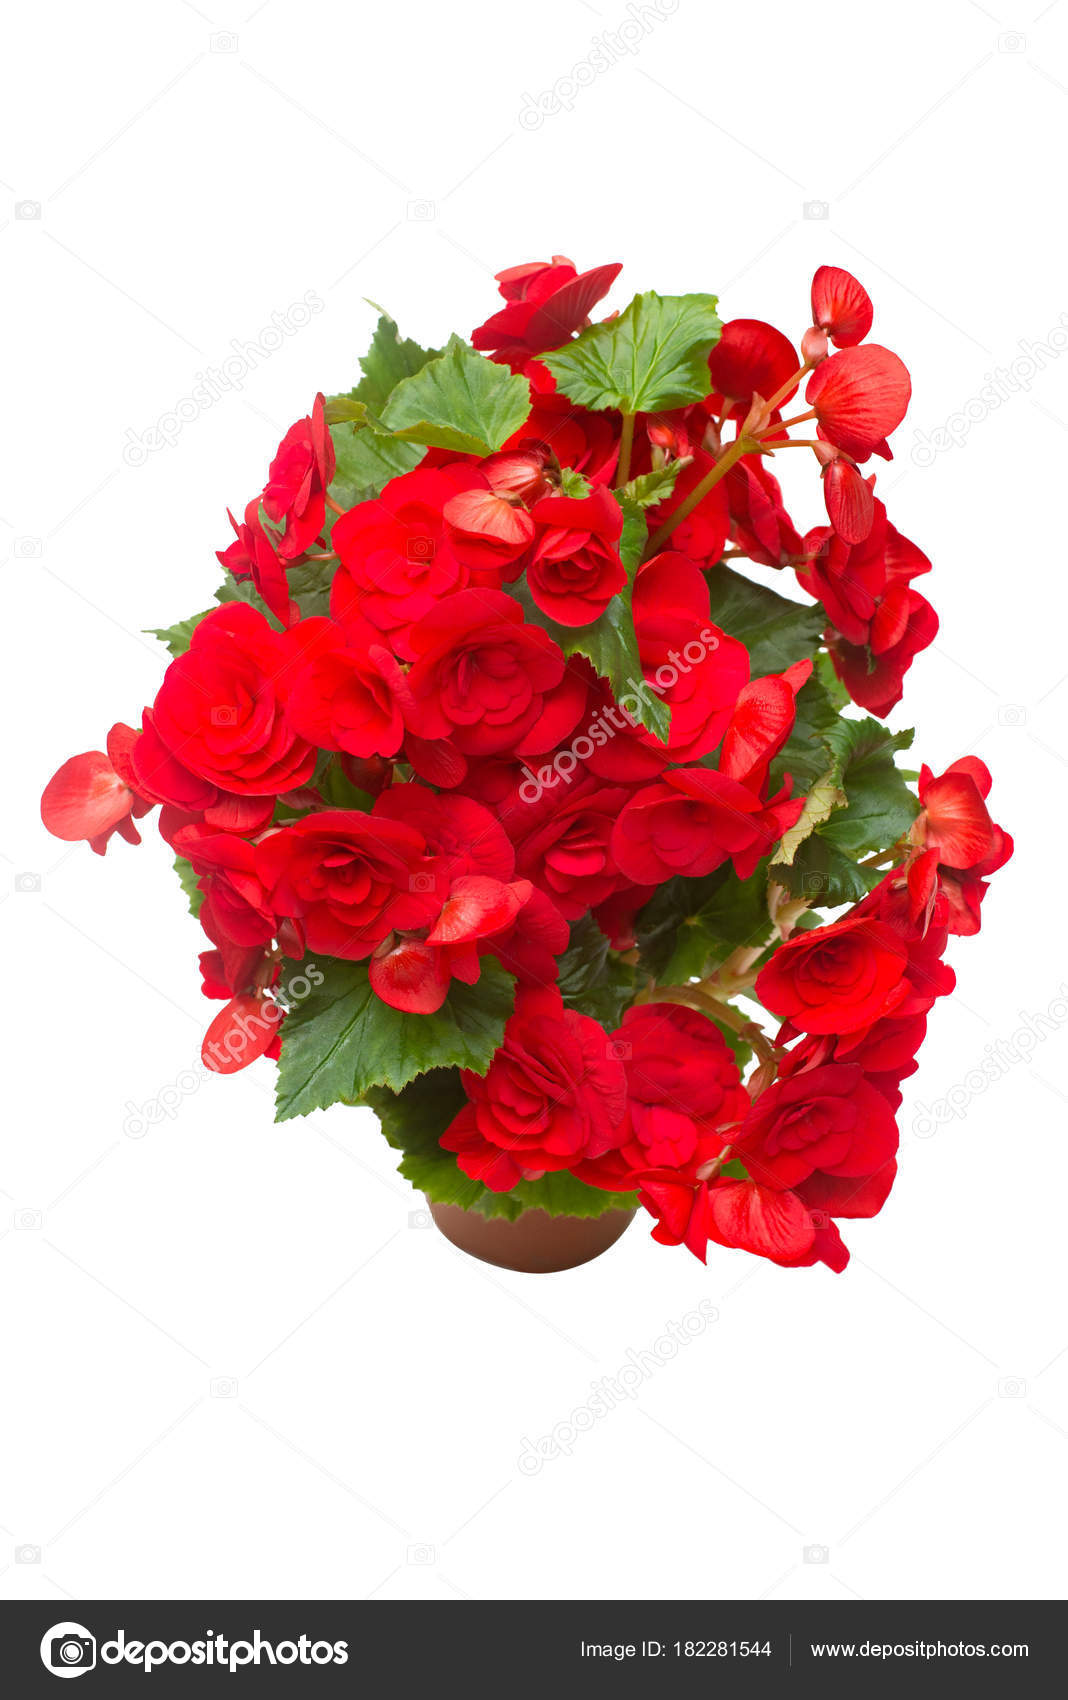 Begonia Red Flowers Pot Isolated White Background Flat Lay Top Stock Photo C Flowerstudio 182281544